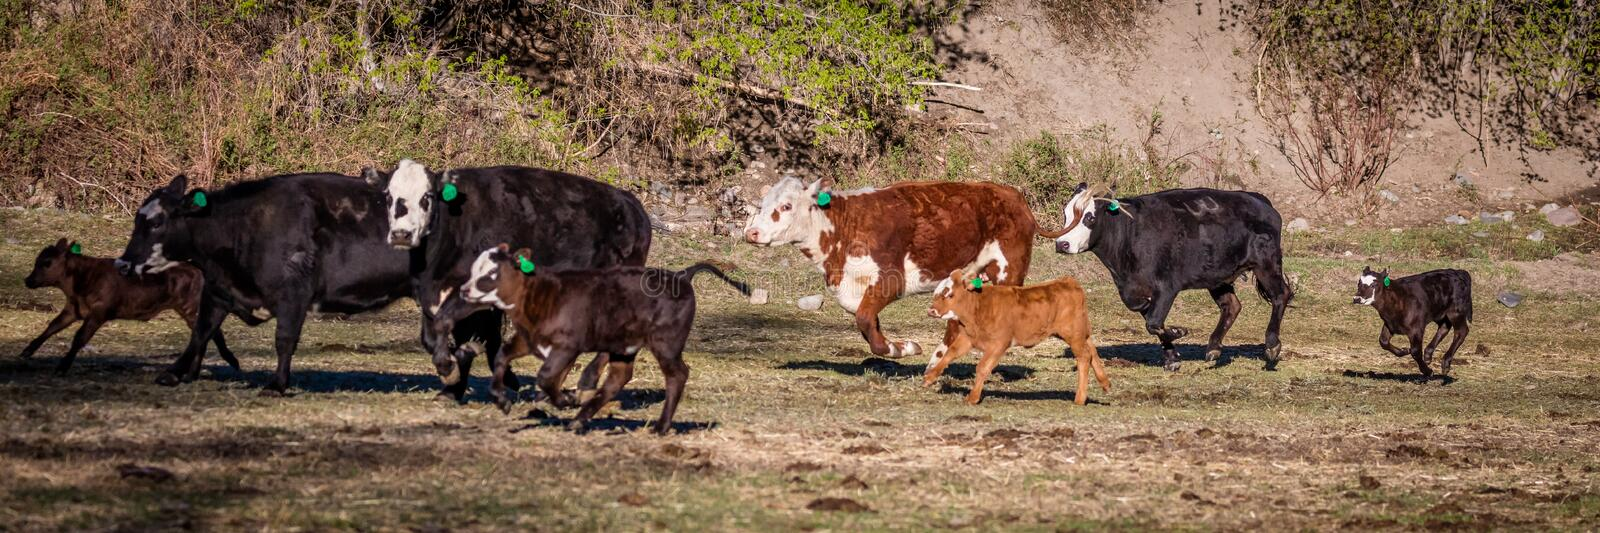 22 AVRIL 2017, RIDGWAY LE COLORADO : Angus Hereford croisent, courant sur le ranch centennal, Ridgway, le Colorado qu'un bétail a photographie stock